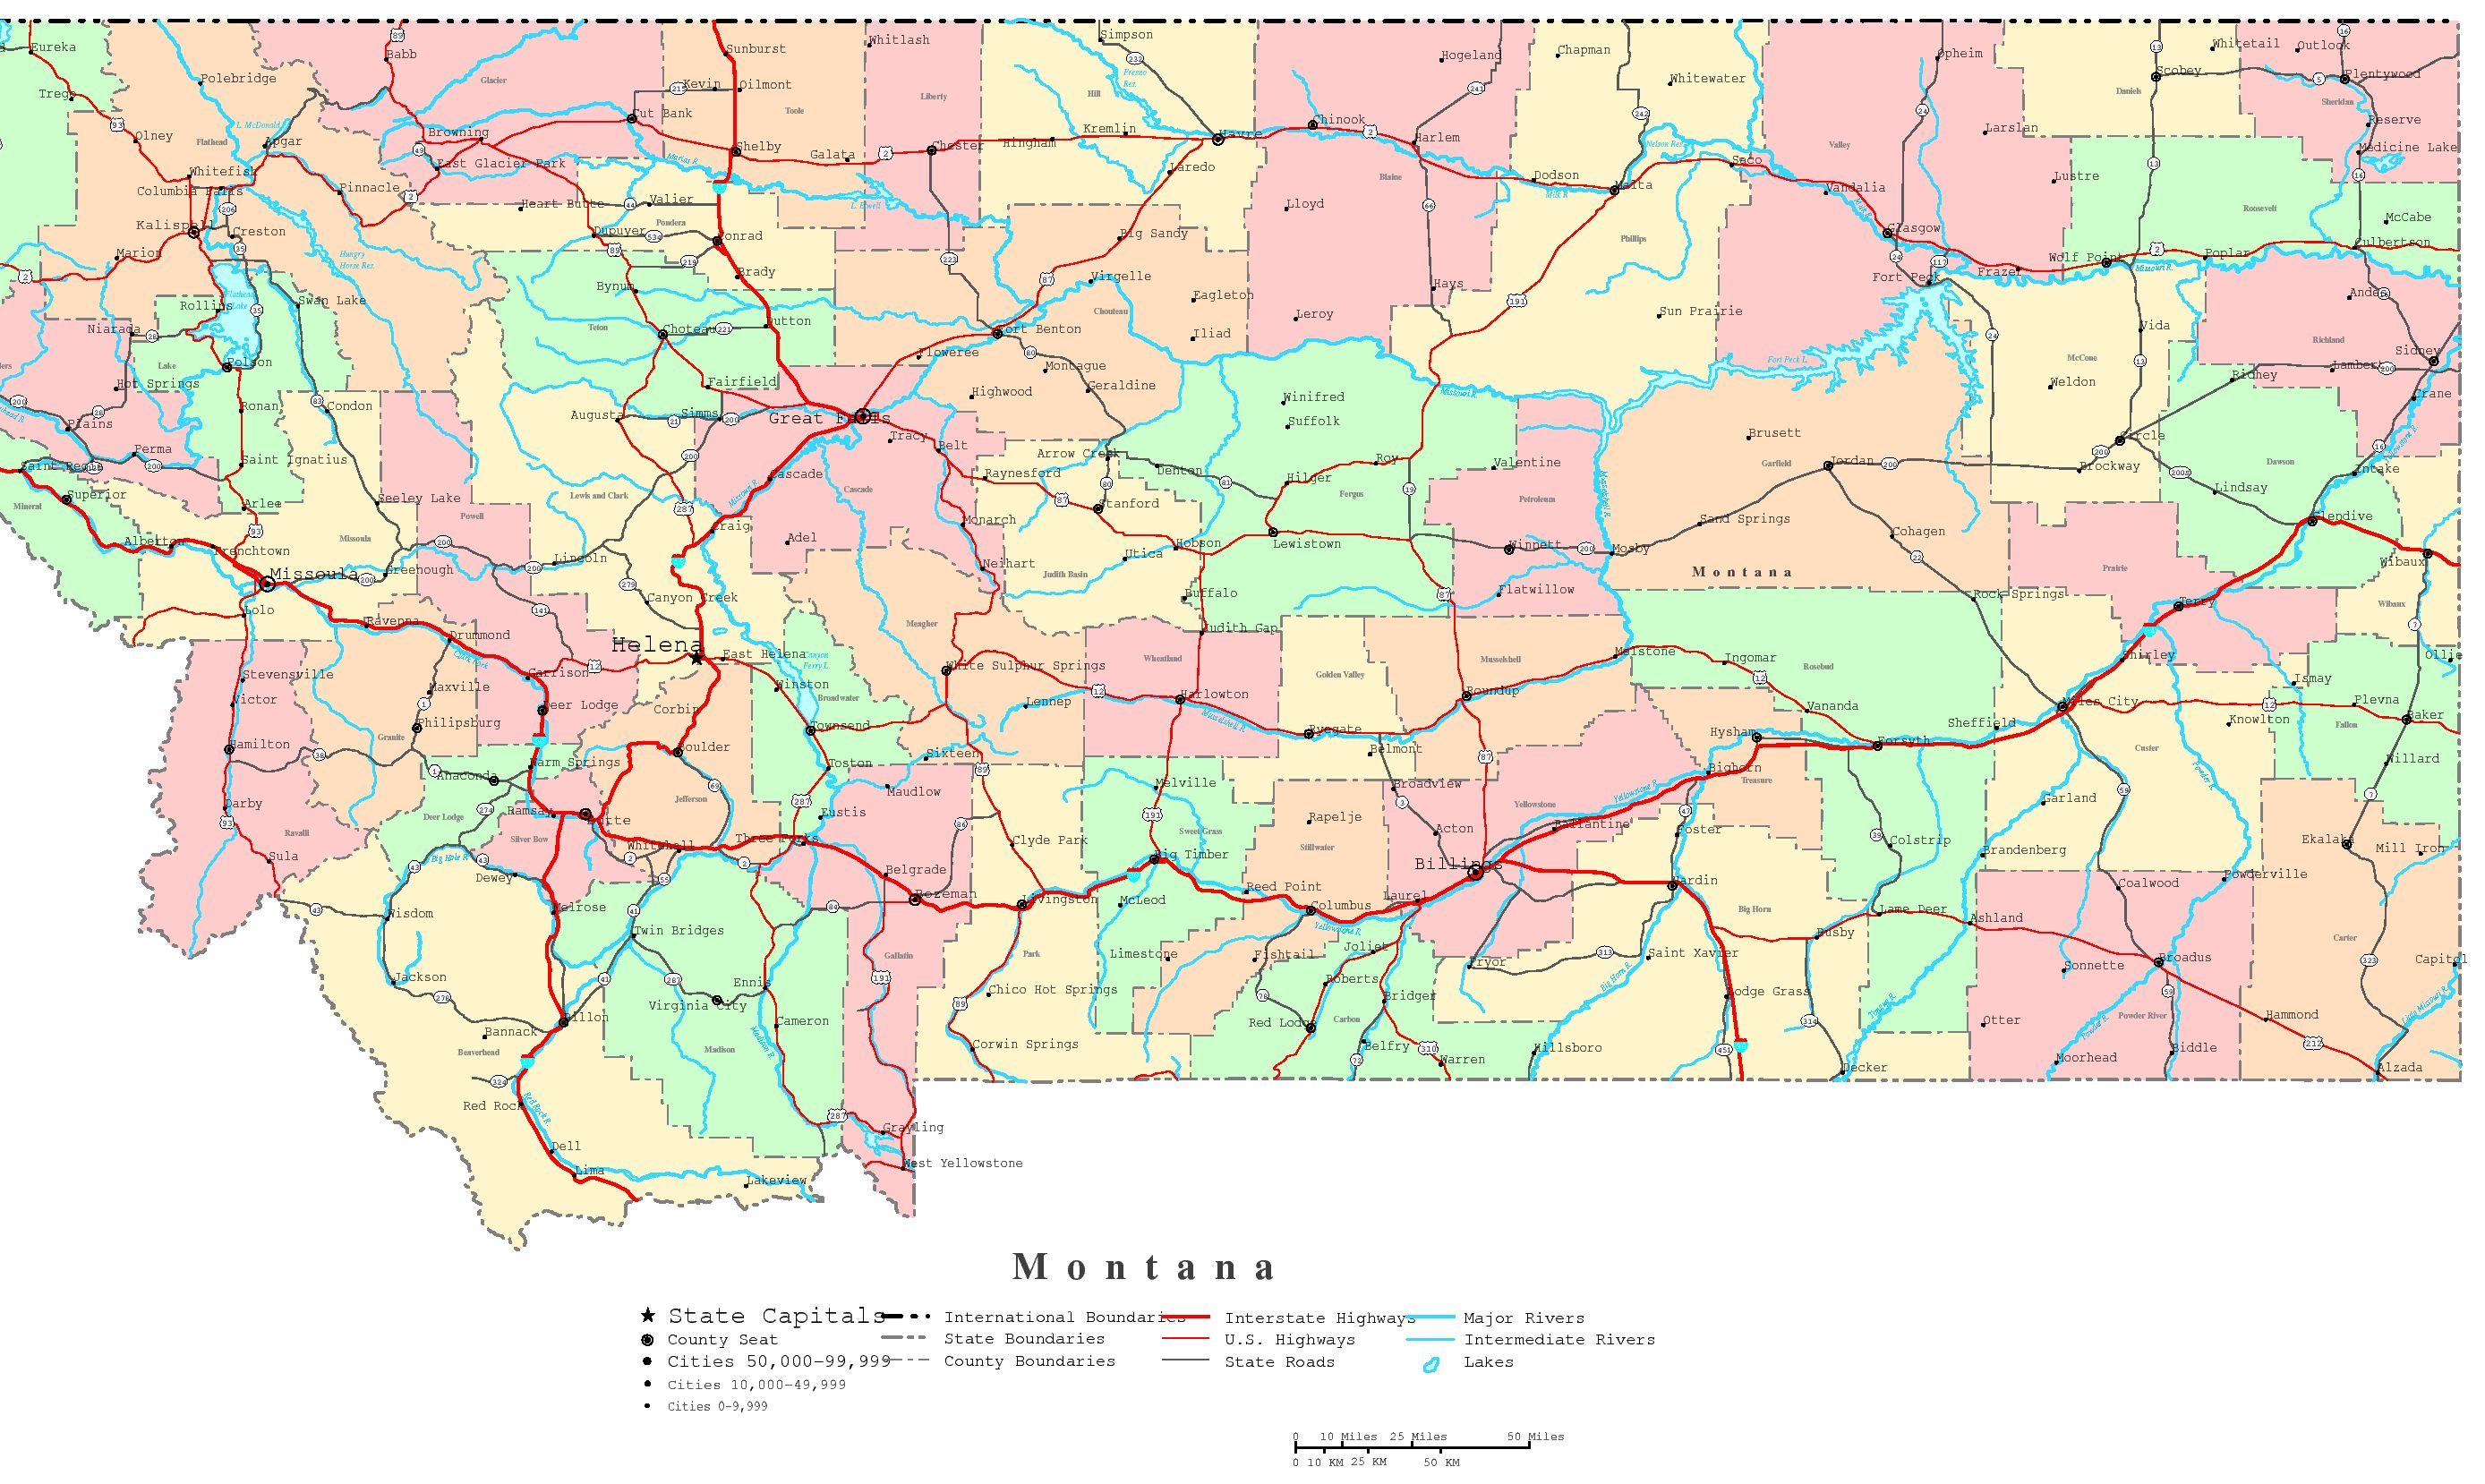 Montana Printable Map - Montana on the us map